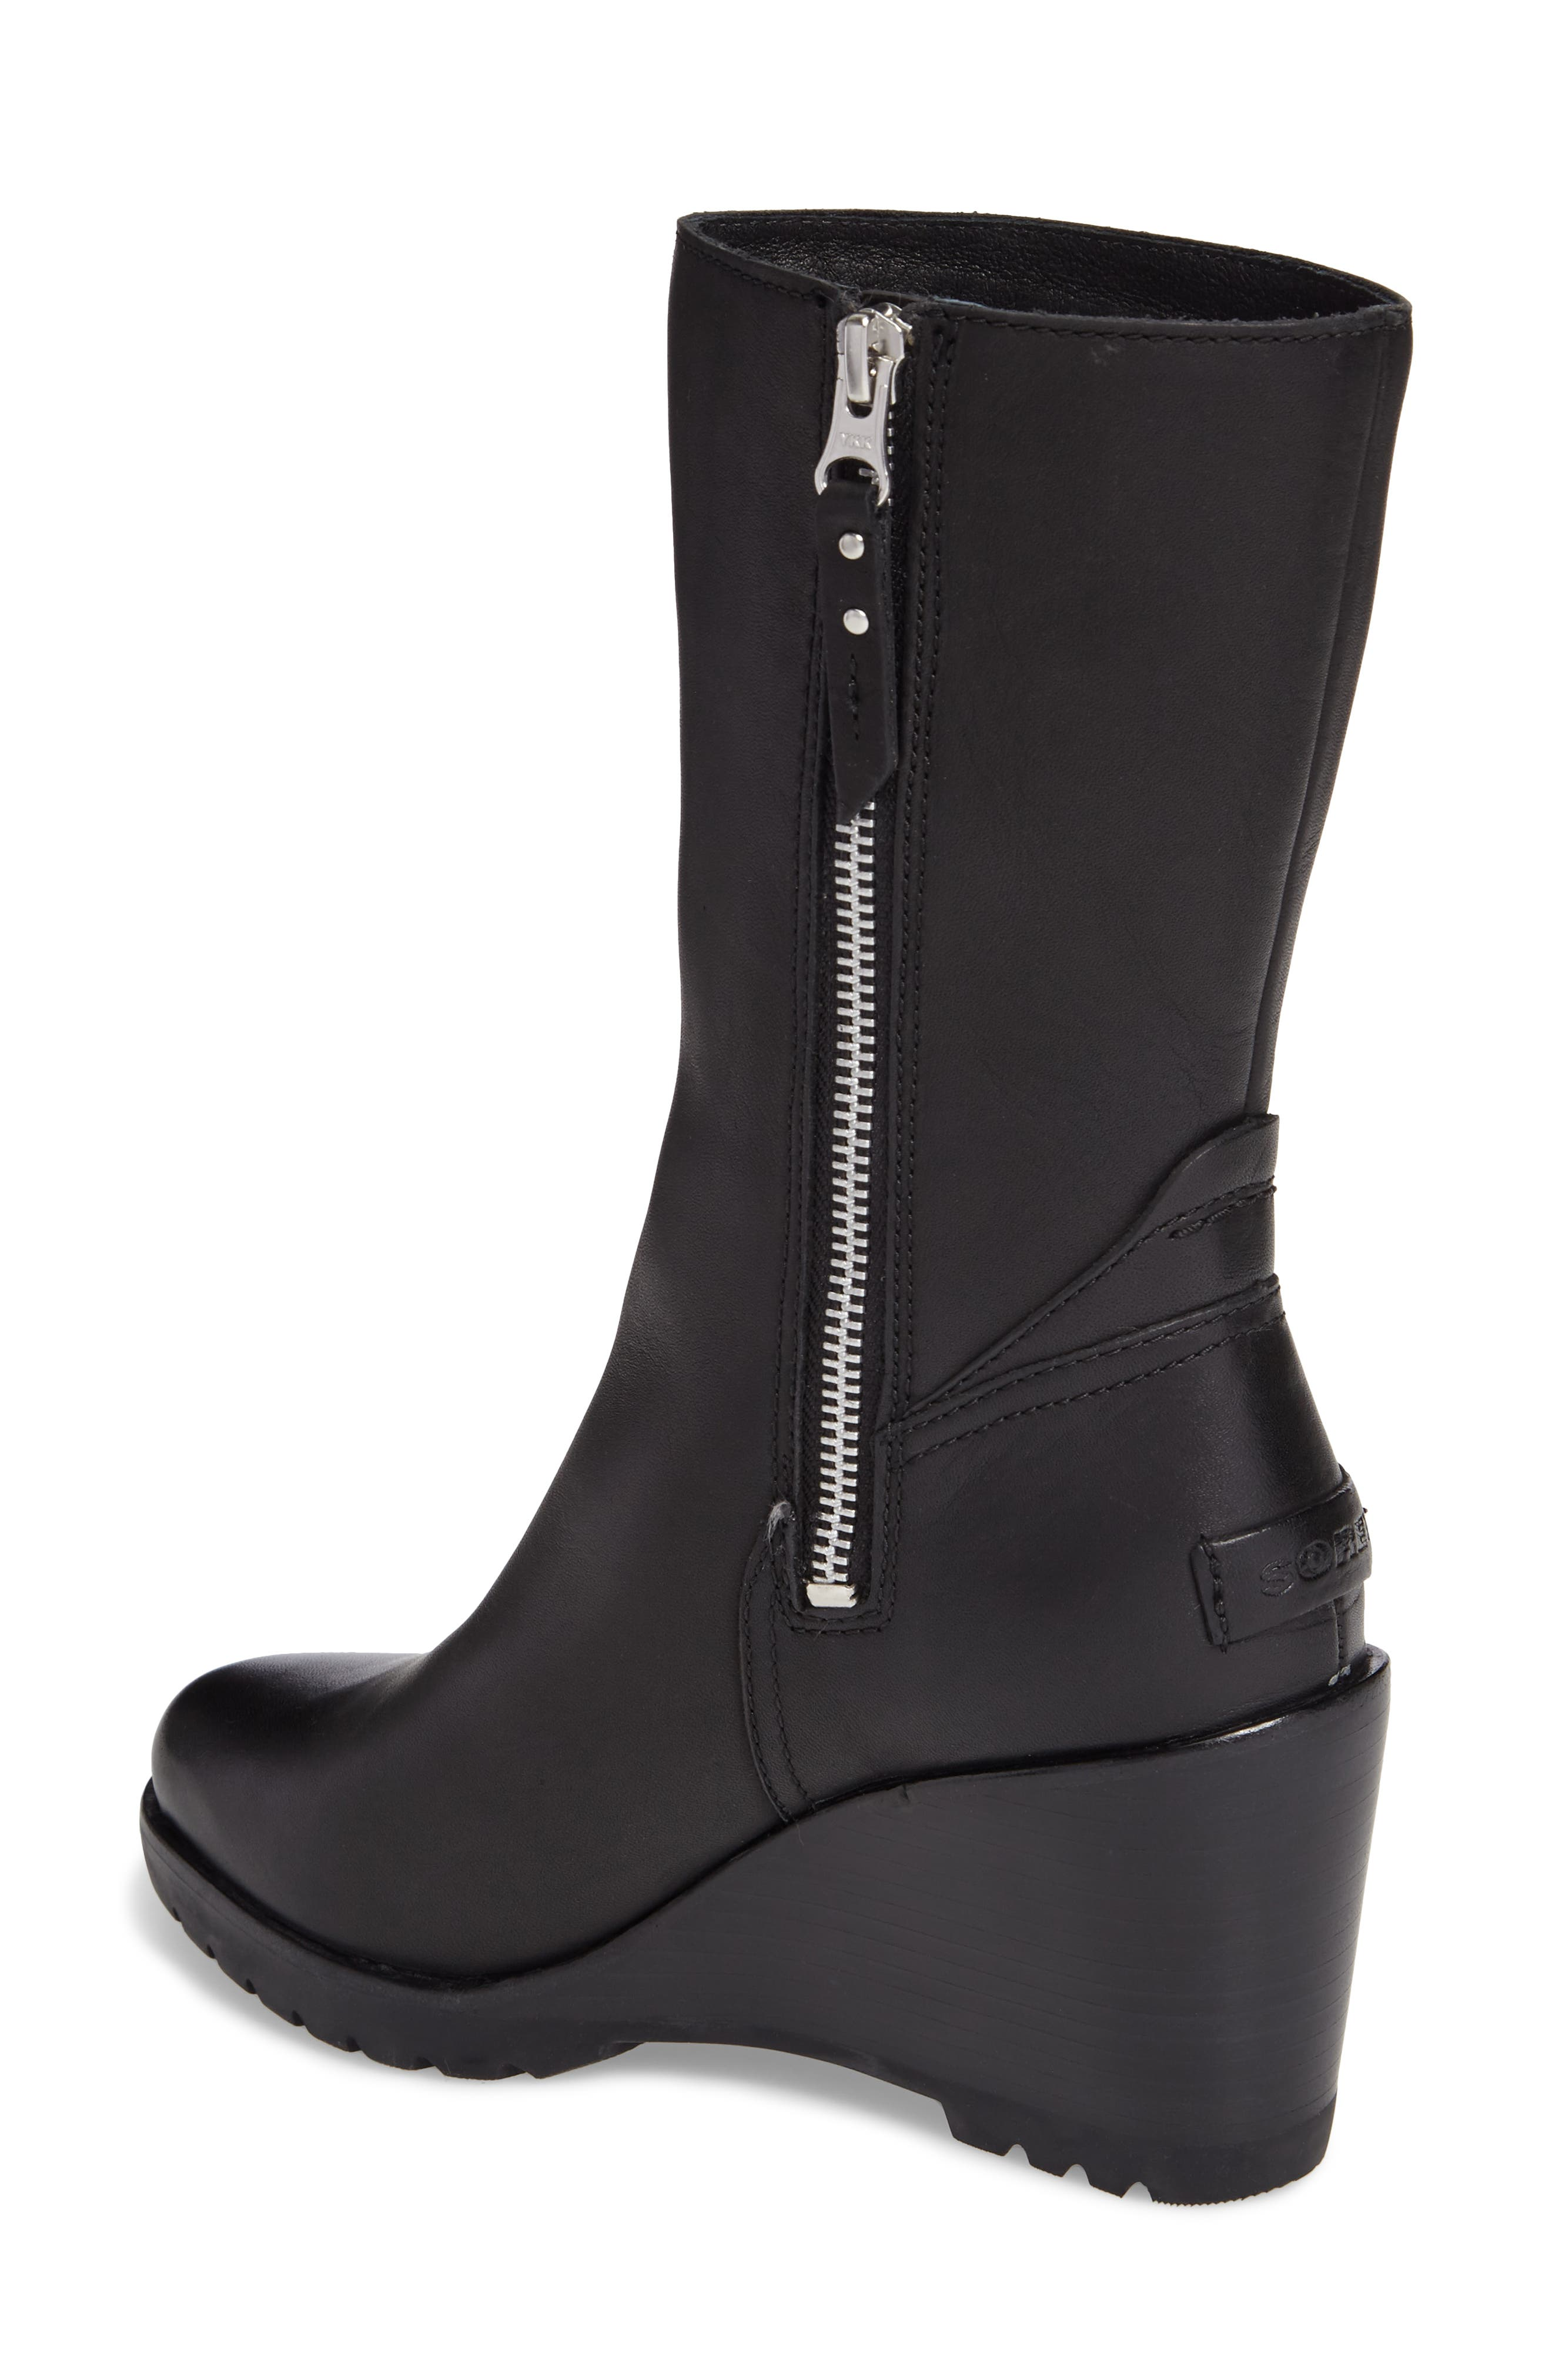 After Hours Waterproof Bootie,                             Alternate thumbnail 2, color,                             Black